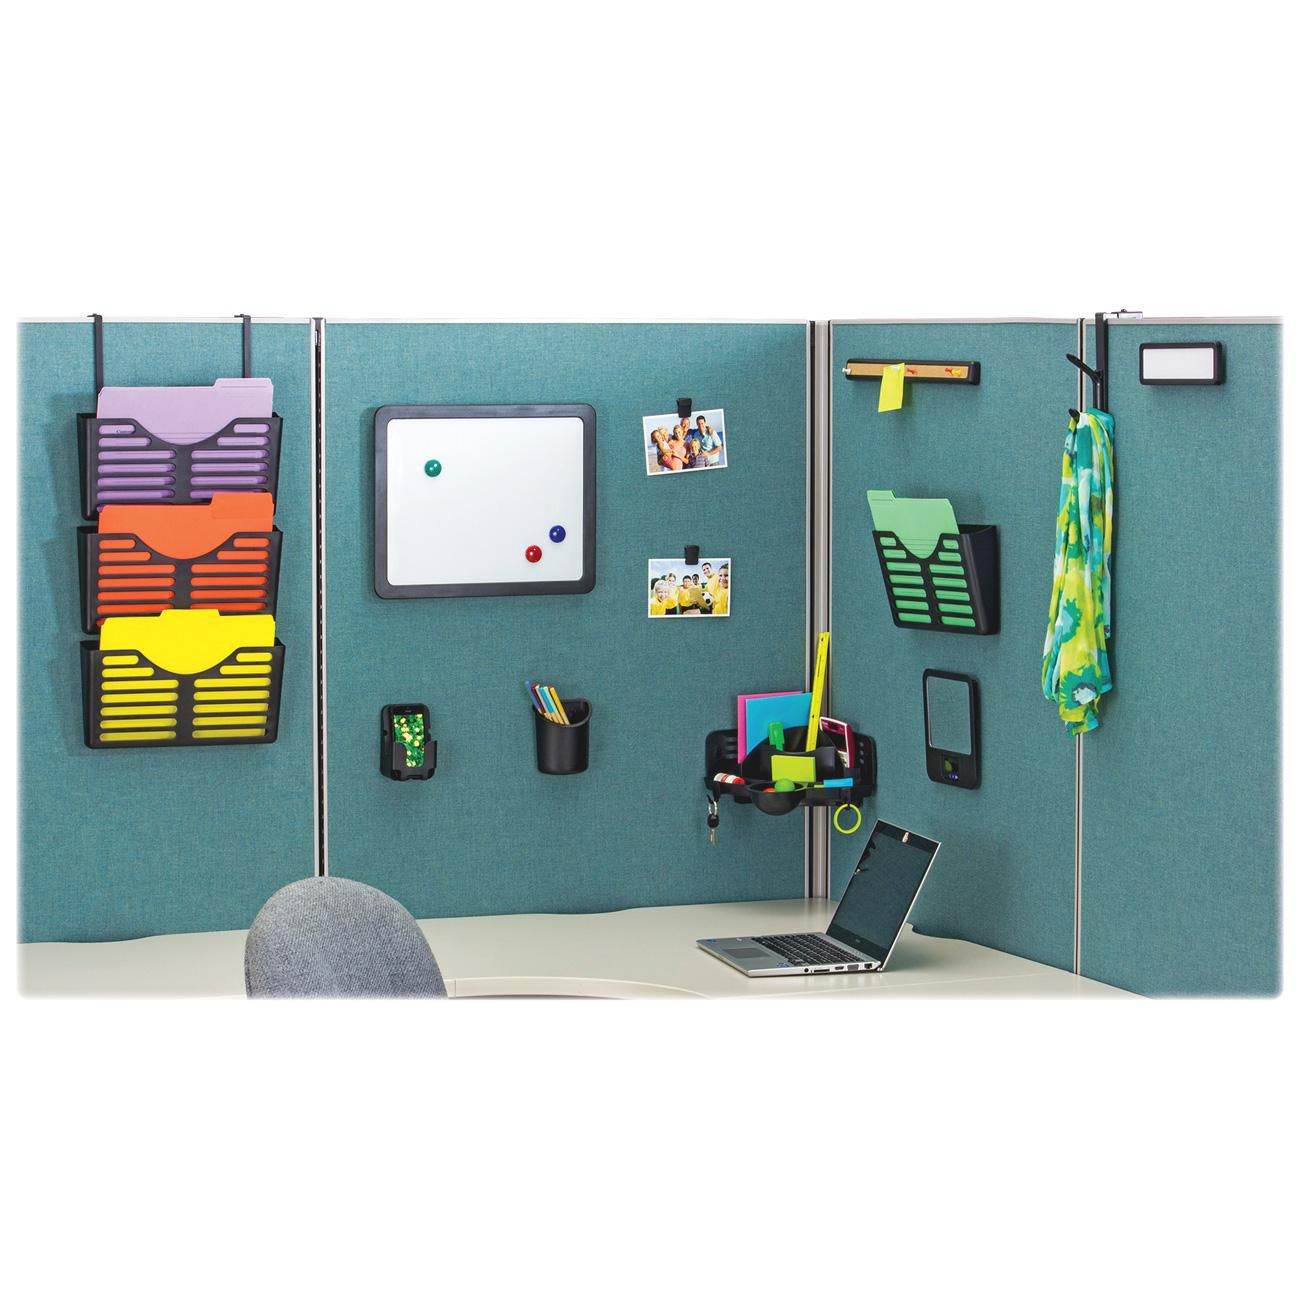 Cubicle Shelves Office Cubicle Walls Wall Hanging Shelves